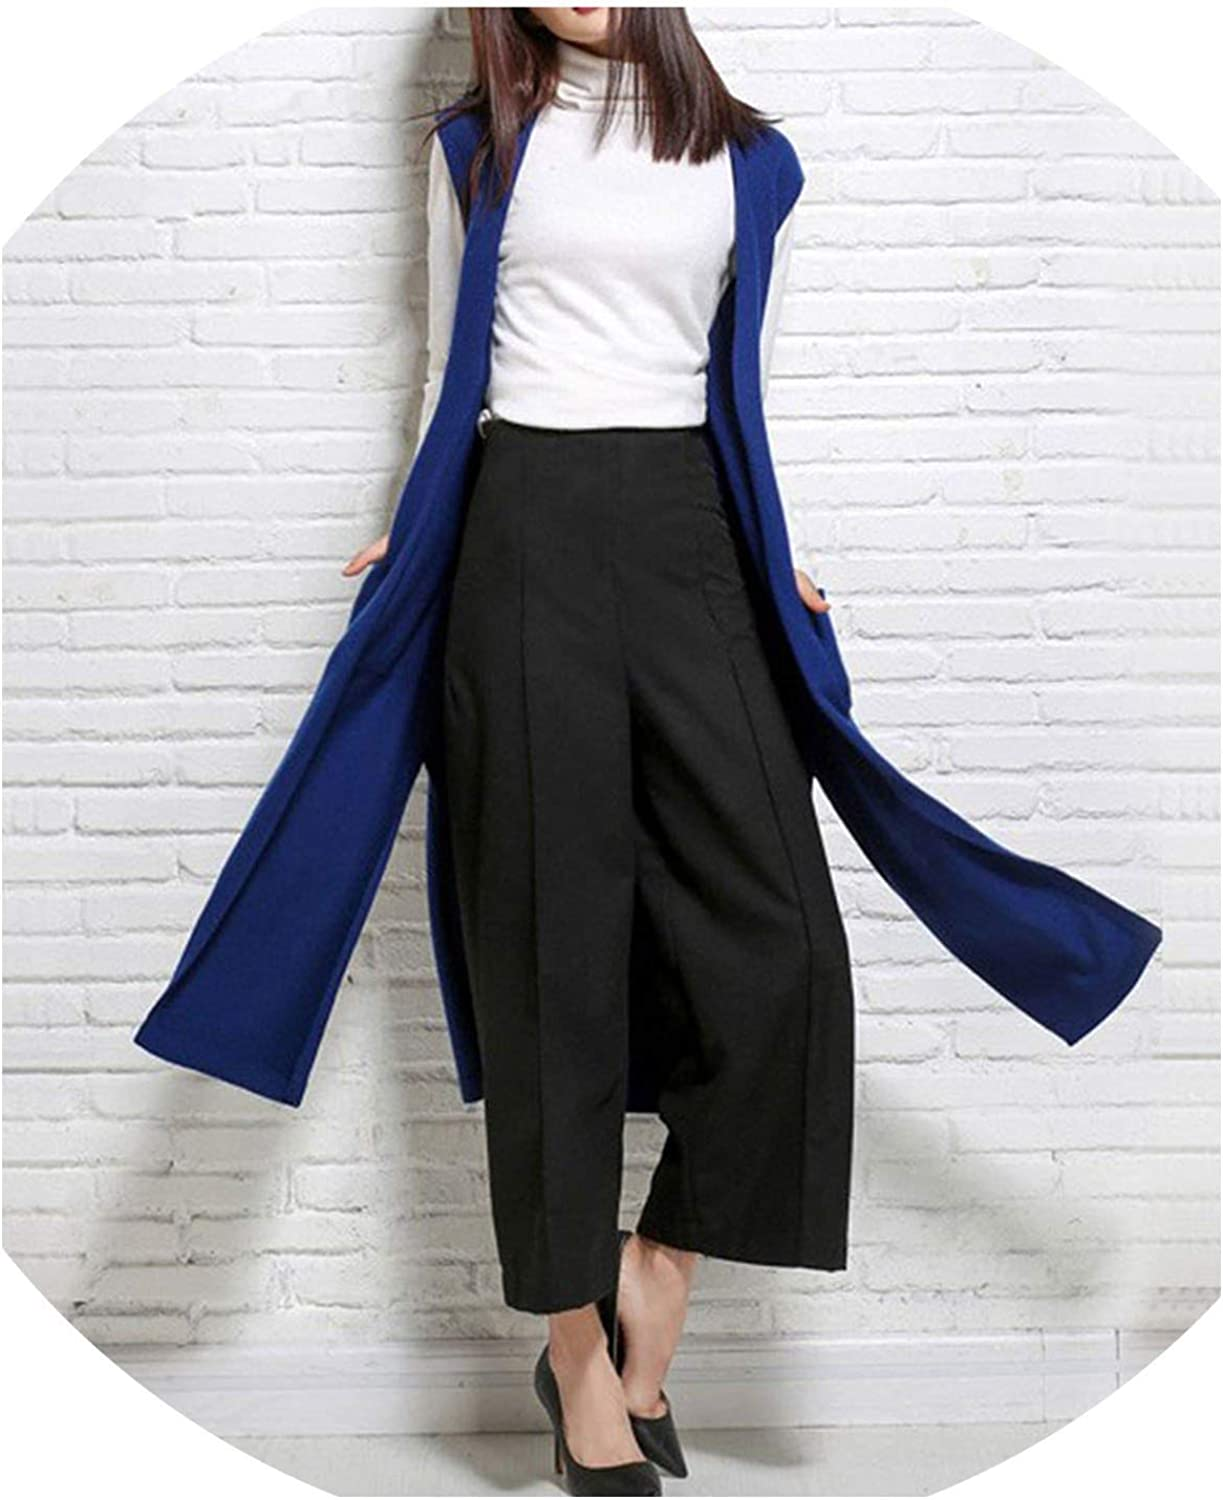 colorfulspace Women Knitted Cashmere Cashmere Long Cardigan with Pocket Fashion Split Style Sleeveless Knitwear Sweater